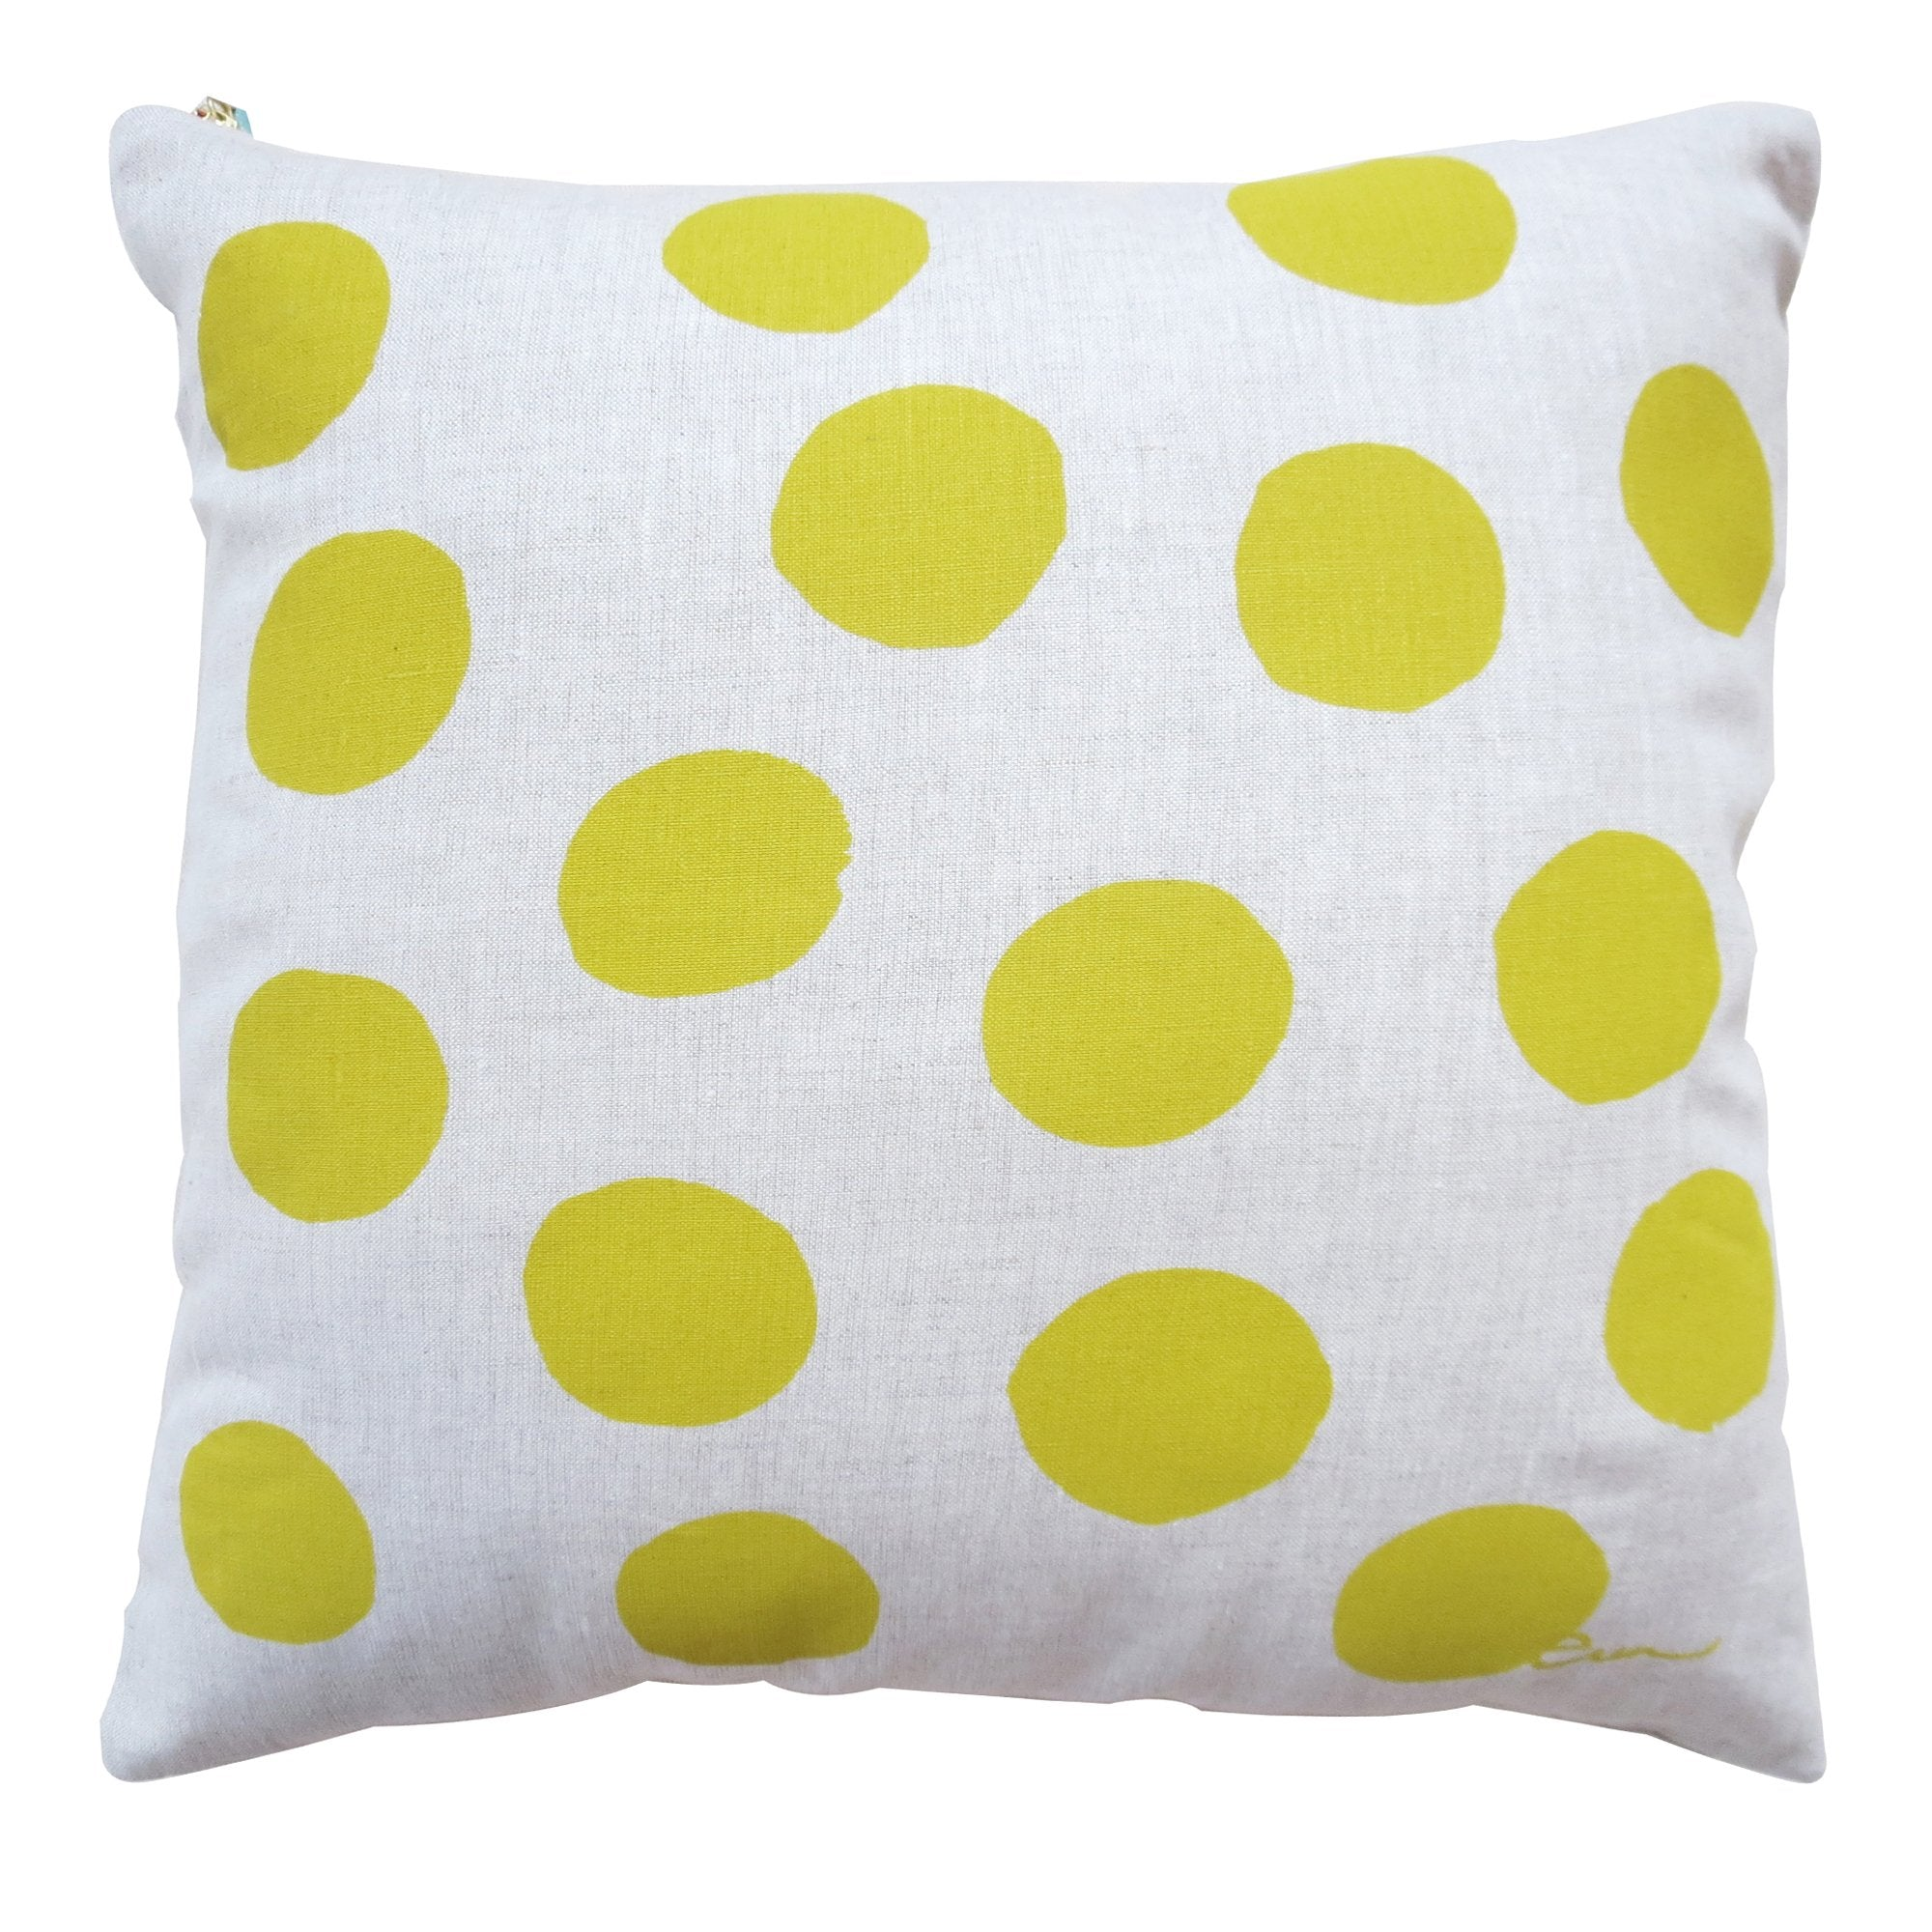 GOLDEN ROD BIG DOT OATMEAL LINEN PILLOW